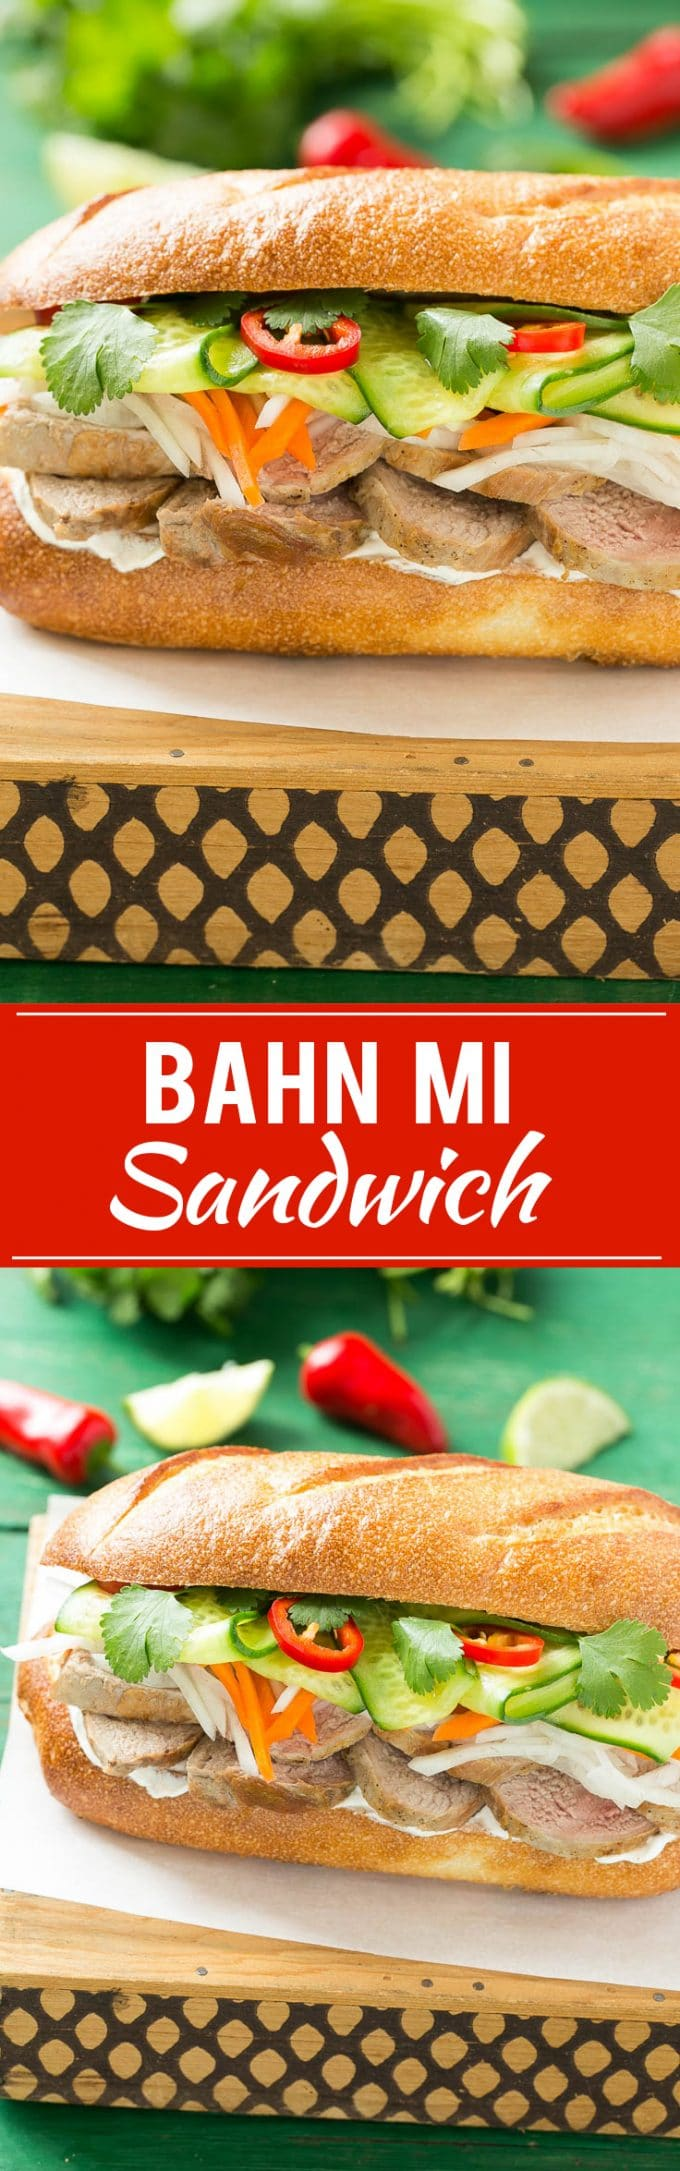 Easy Bahn Mi Sandwich Recipe | Best Bahn Mi Sandwich | Easy Bahn Mi Sandwich | Vietnamese Sandwich Recipe | Easy Vietnamese sandwich | Best Vietnamese sandwich